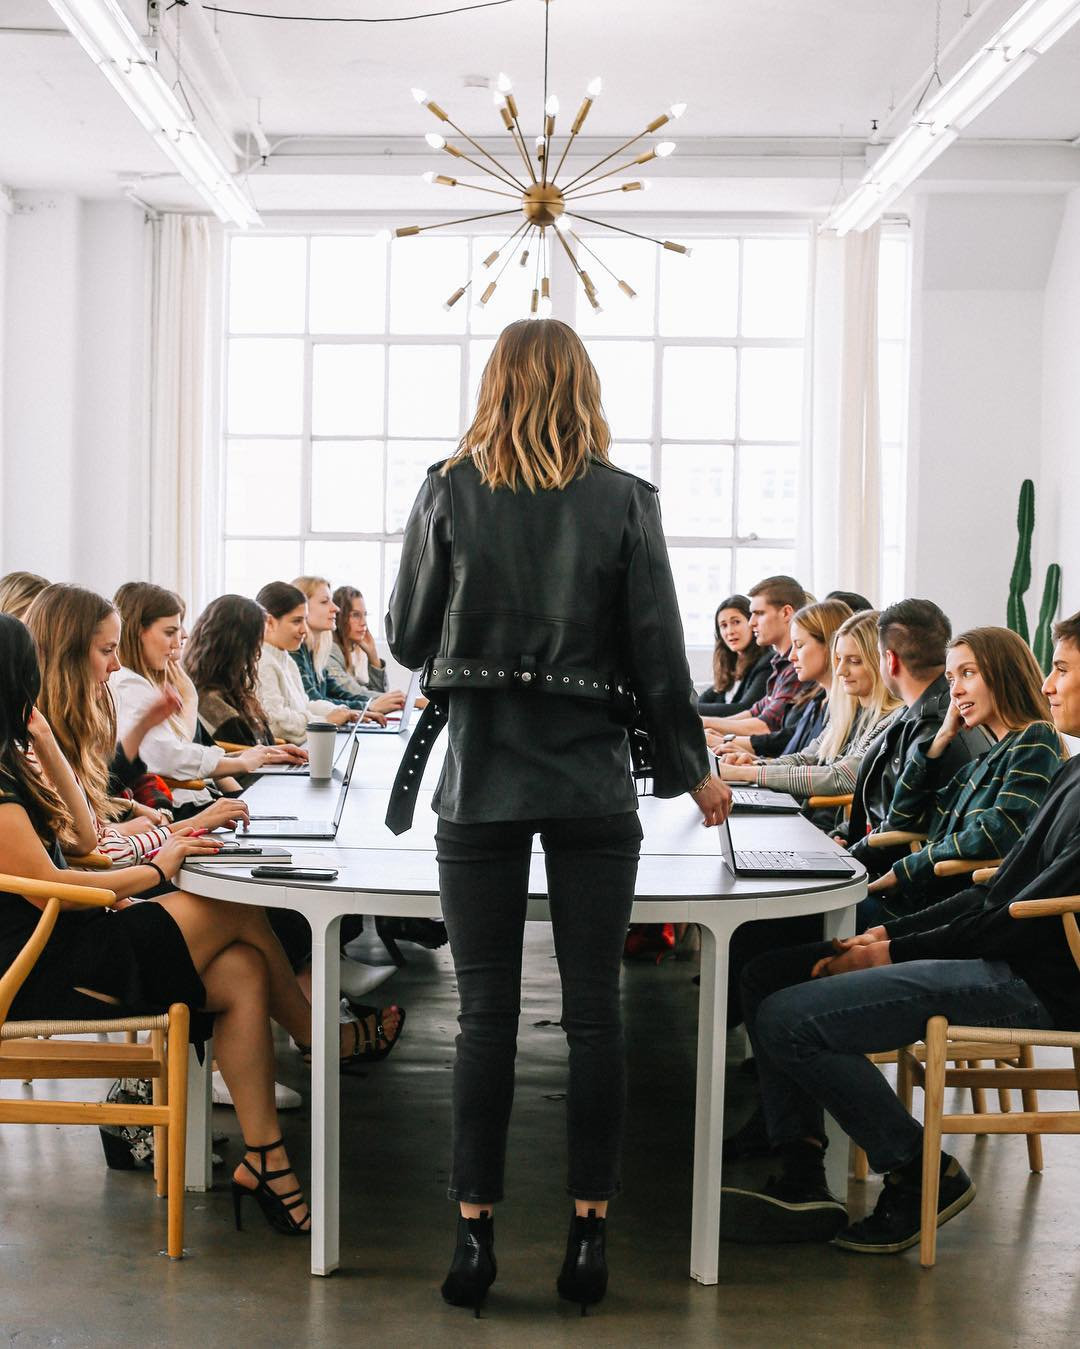 woman in leather jacket leading conference in white room